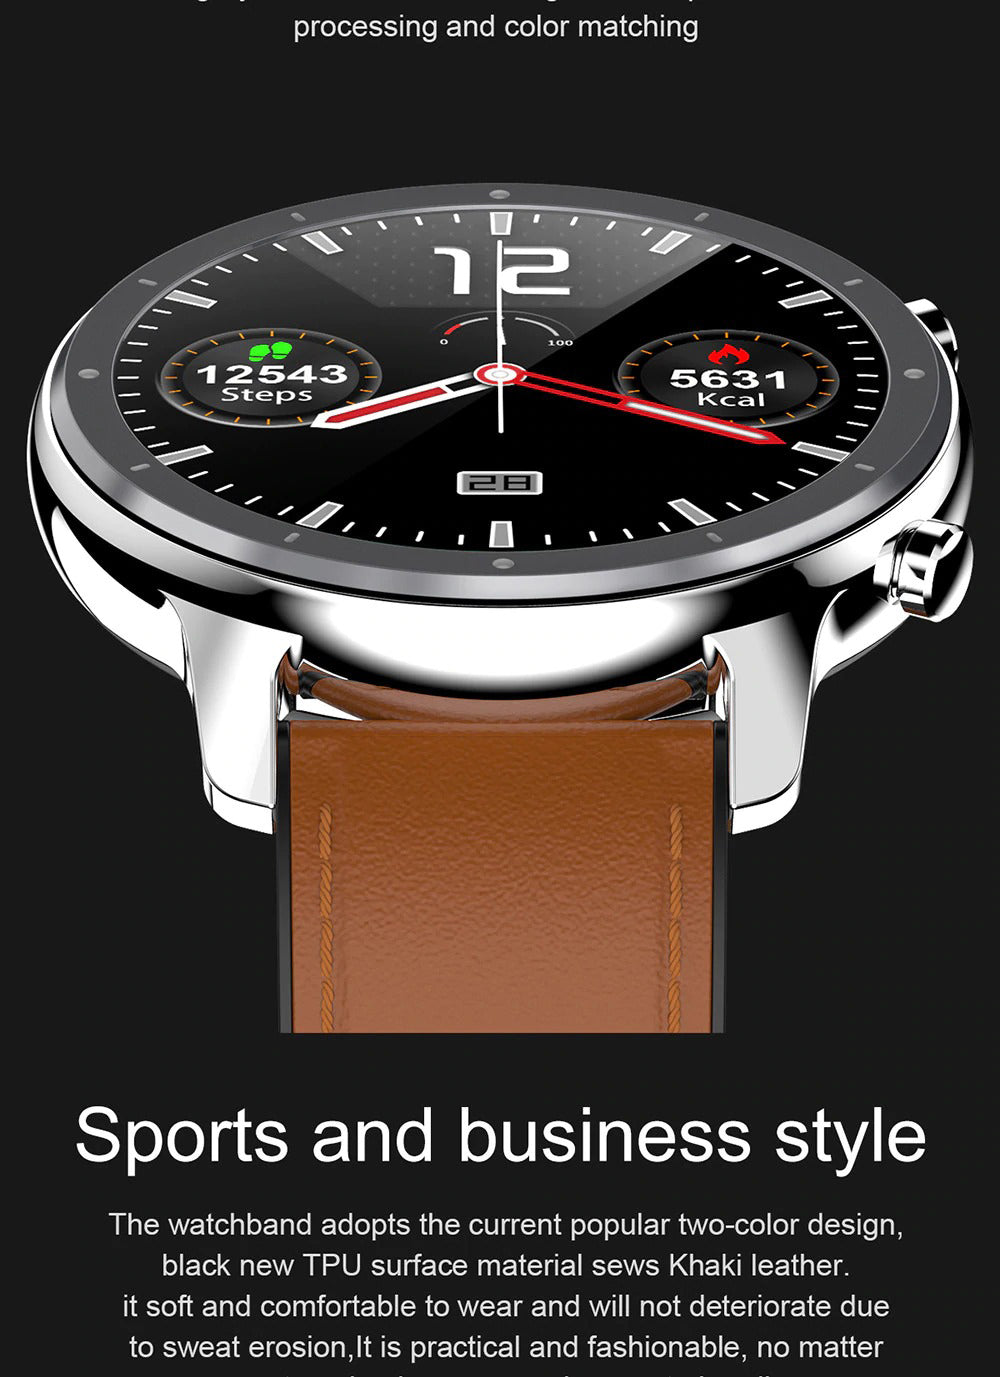 X9 Beretta Smart Watch Make Sports Business Style